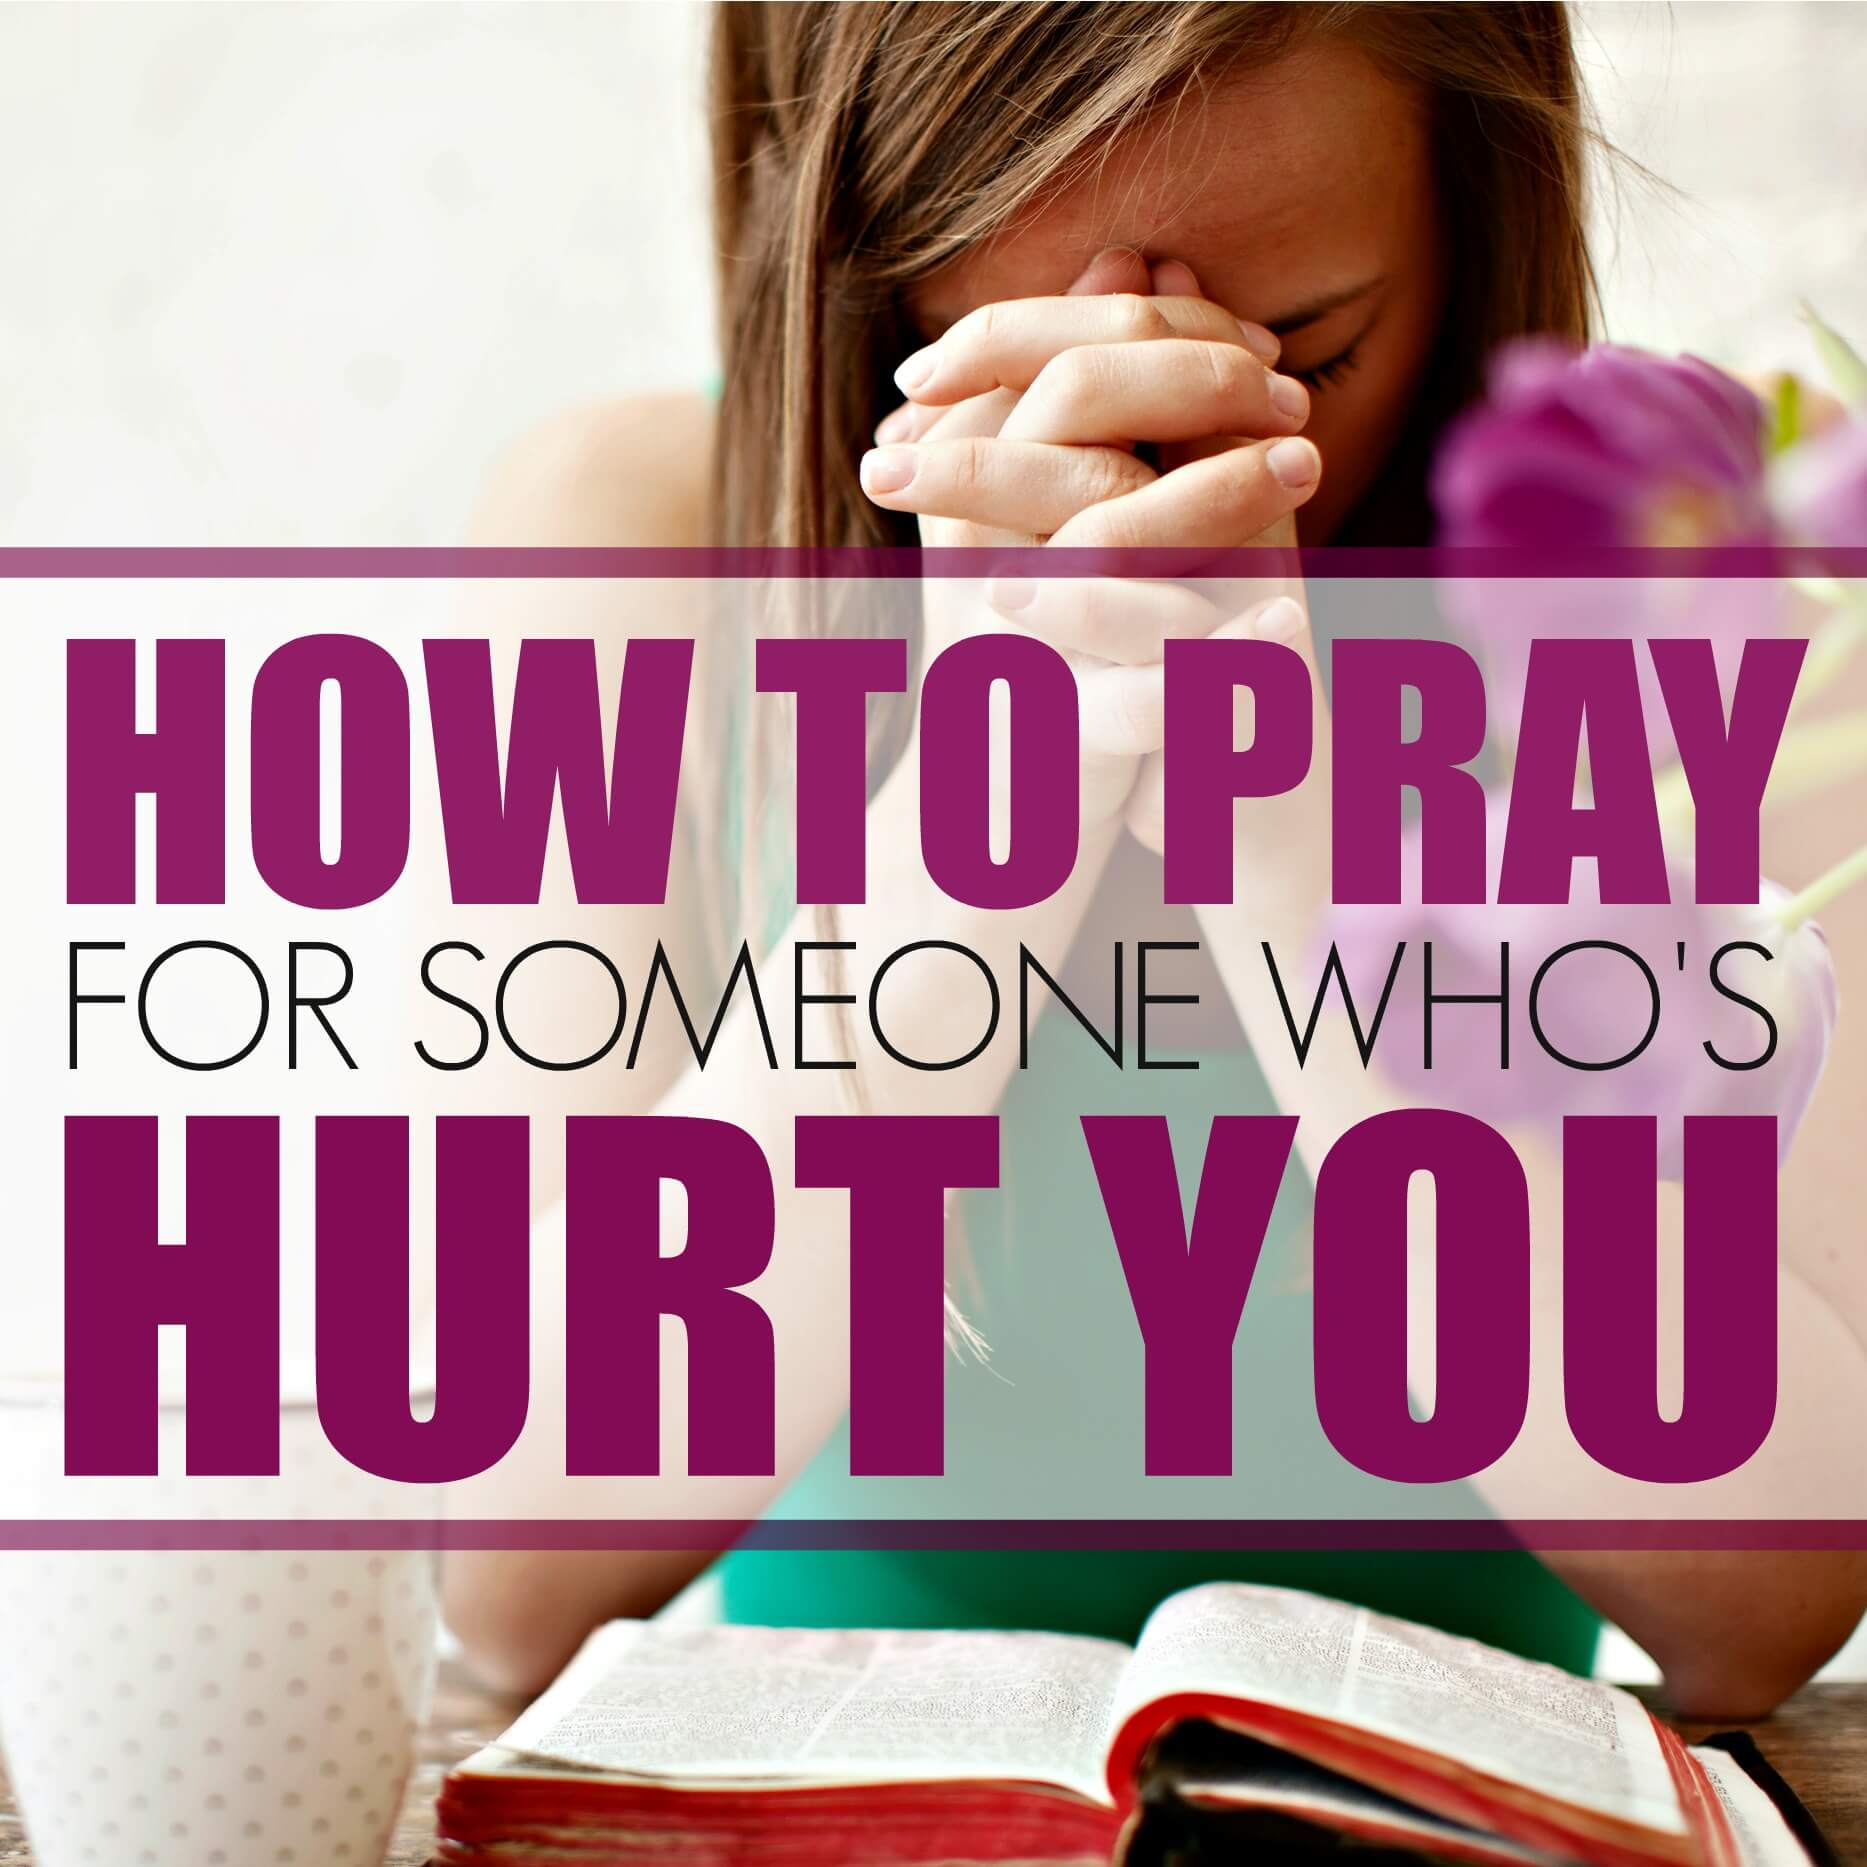 How To Pray for Someone Who's Hurt You